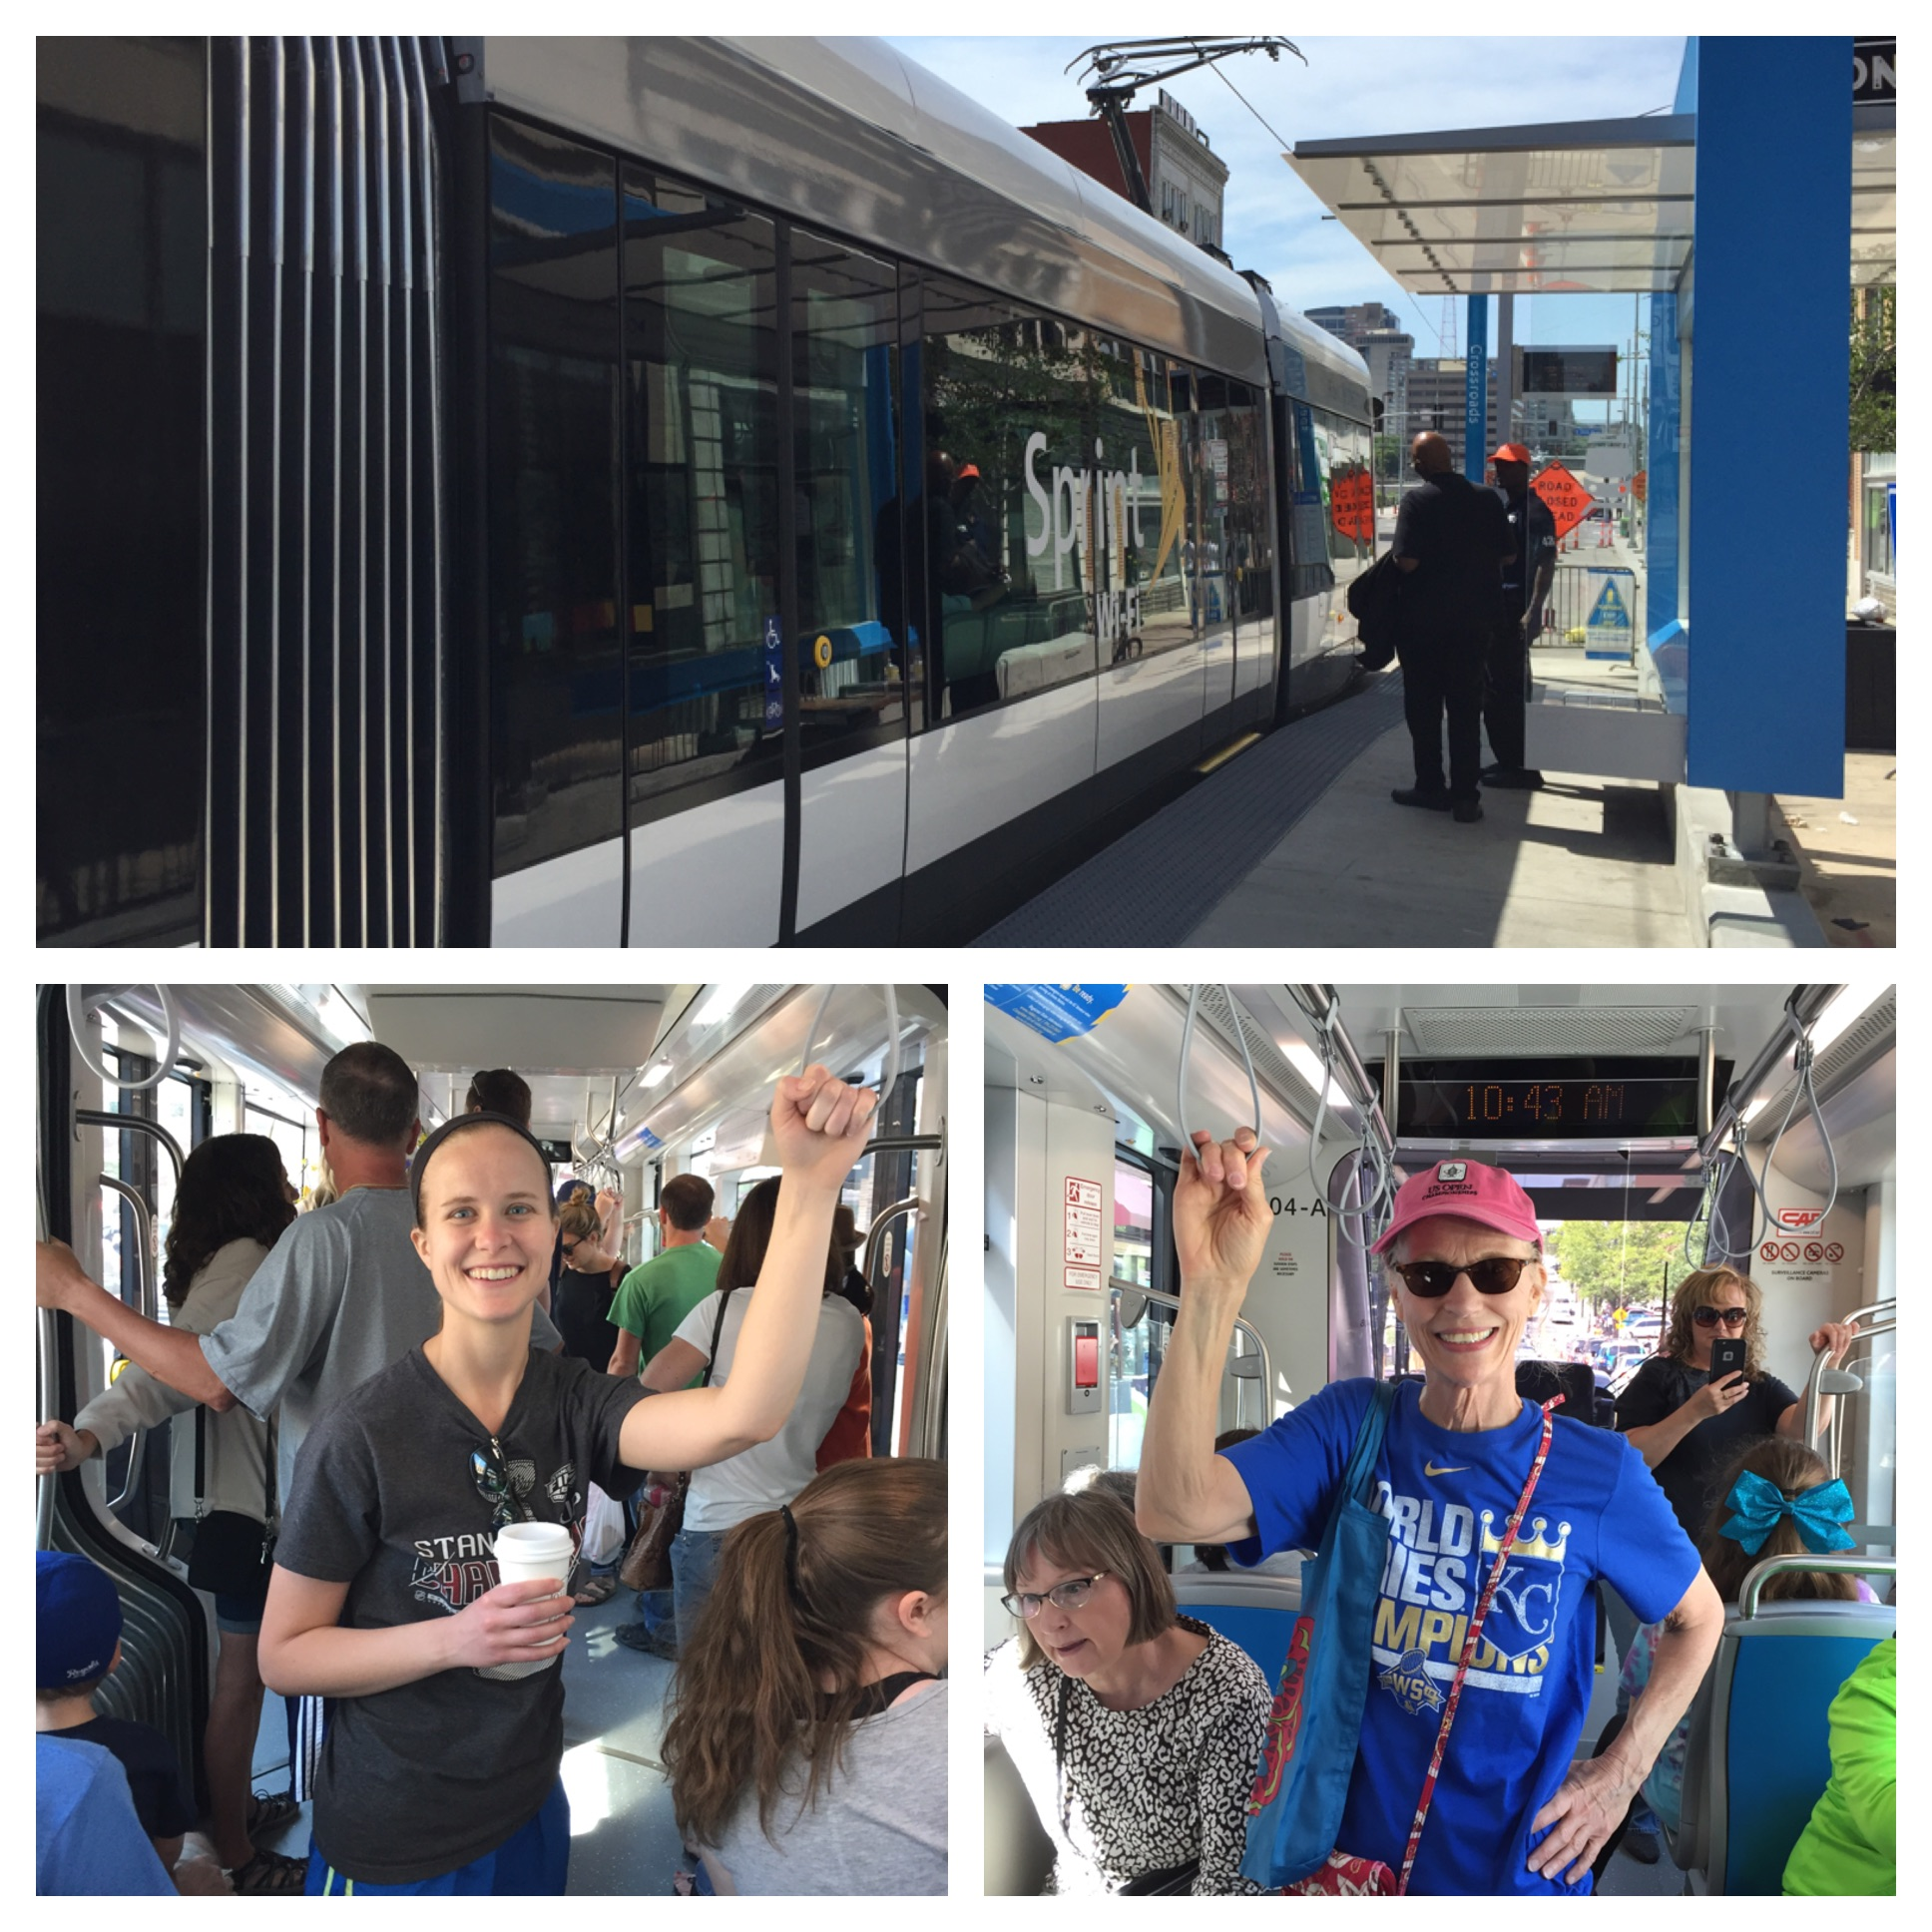 Kansas Citians riding public transportation here for the first time! It brought a lot of people down for the opening complete with 2 days of fun events and fireworks!